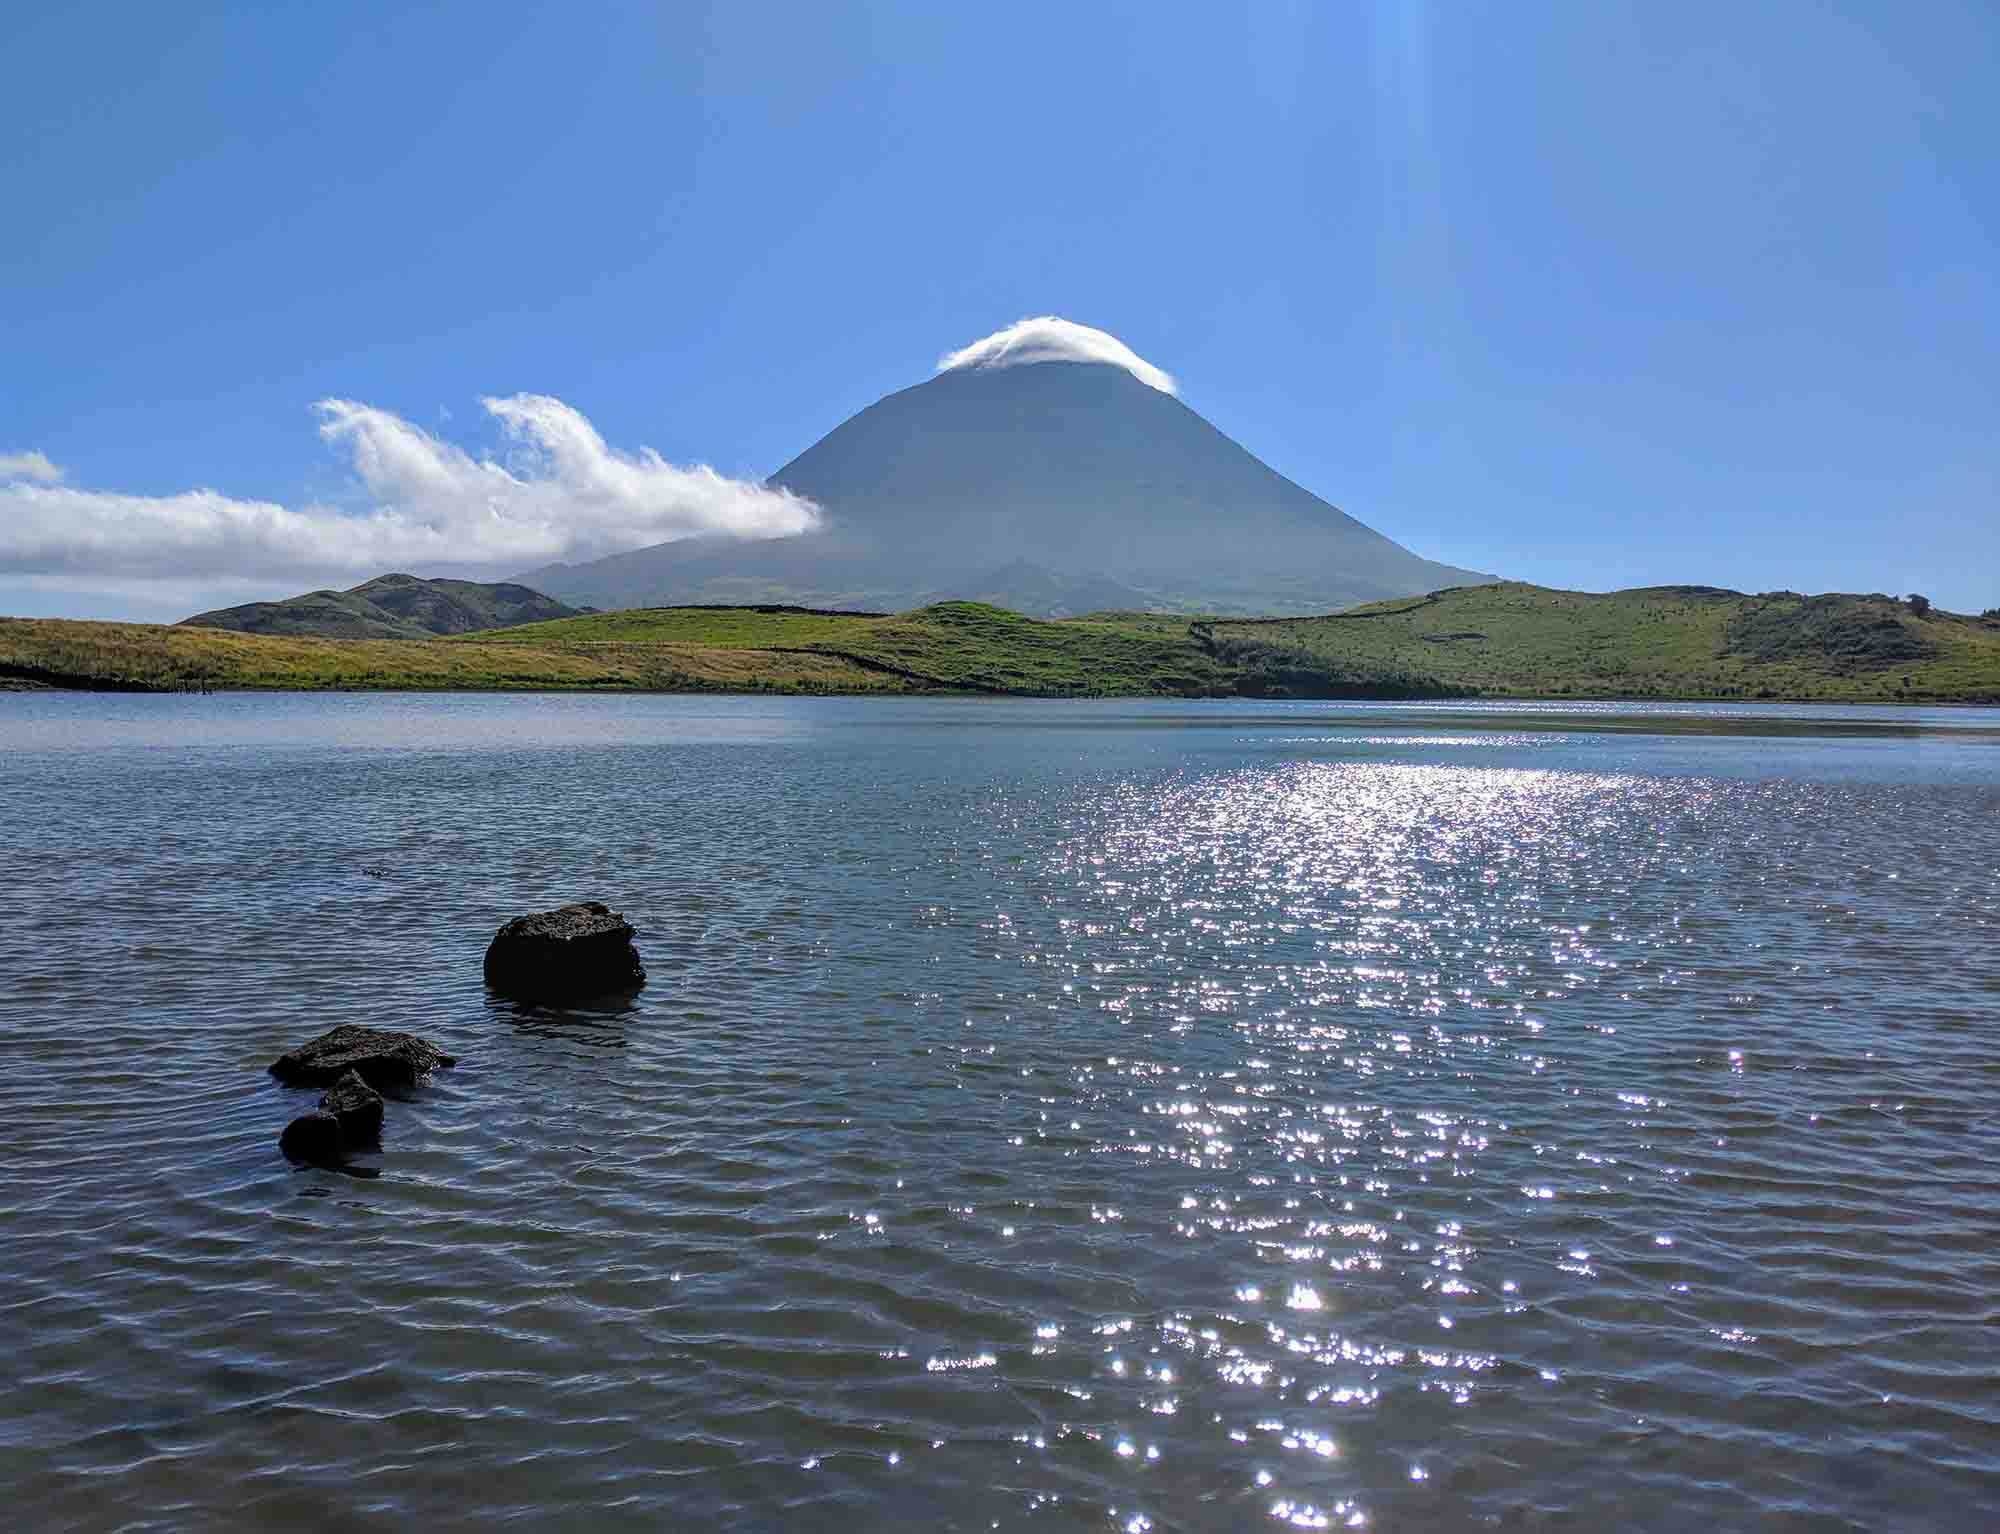 Mount Pico from Captains Lake